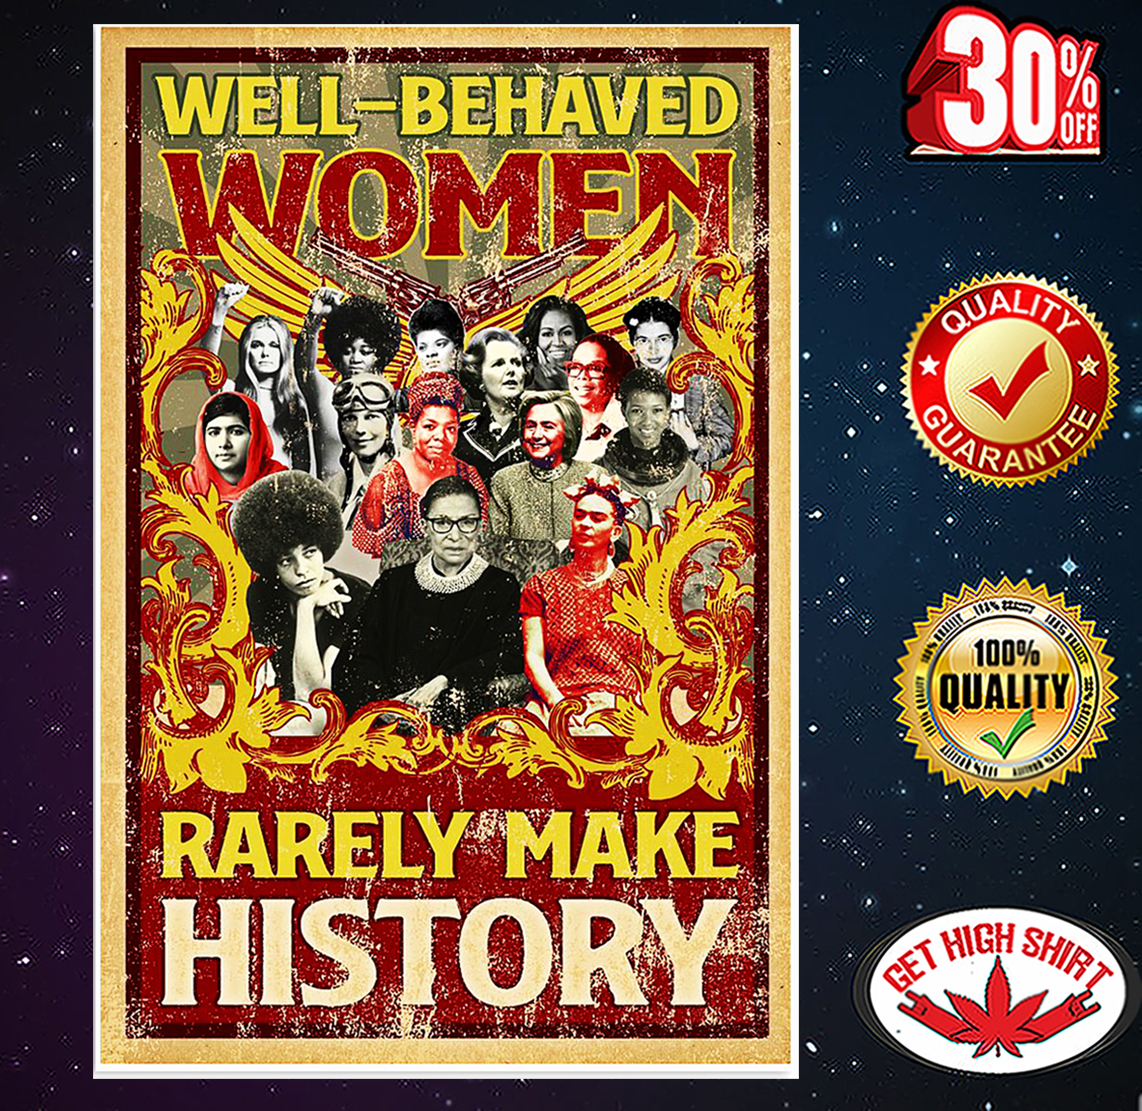 Well behaved women rarely make history poster 24x36